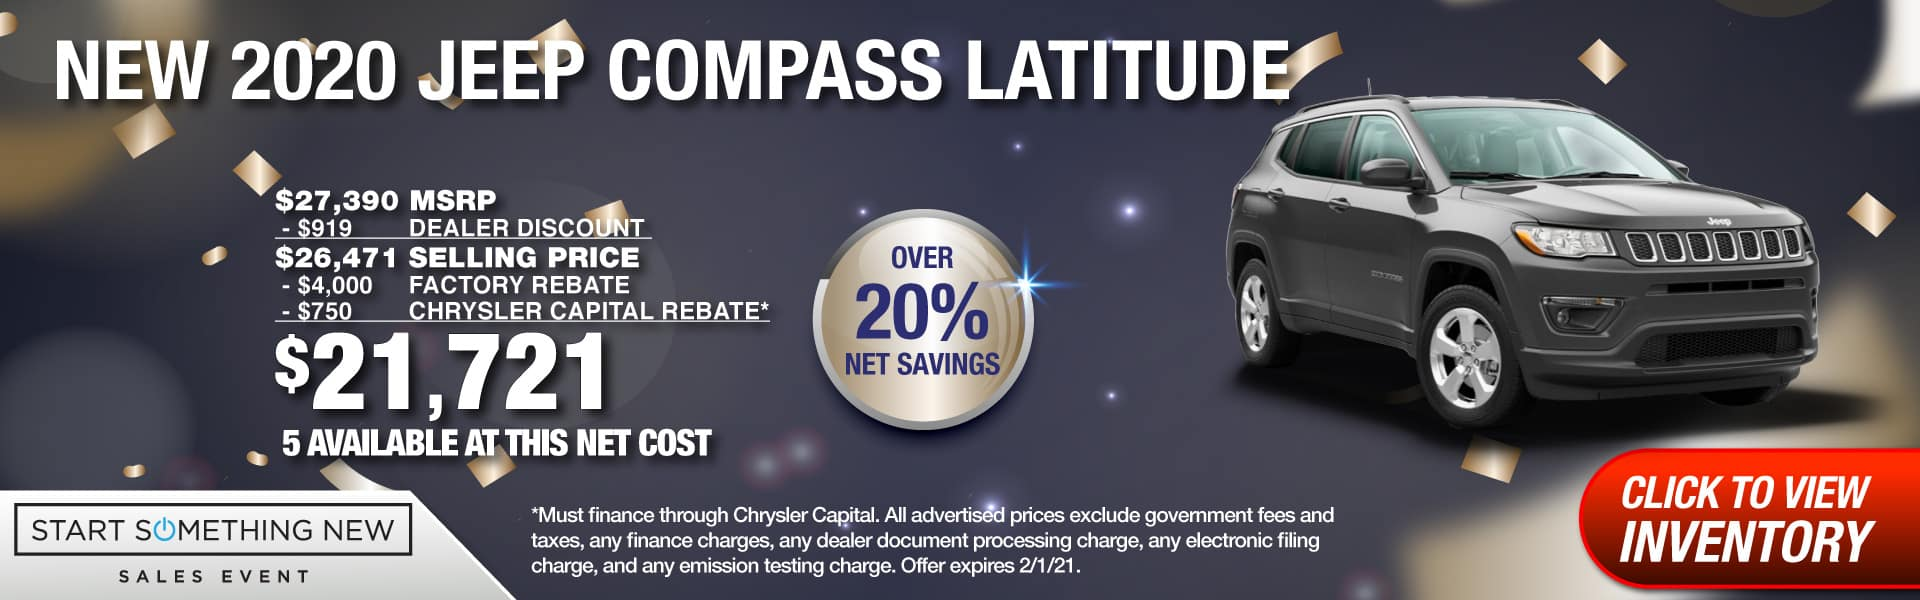 SD CDJR 1920px_Offers_Feb1_Compass_Latitude-03 – Net Cost